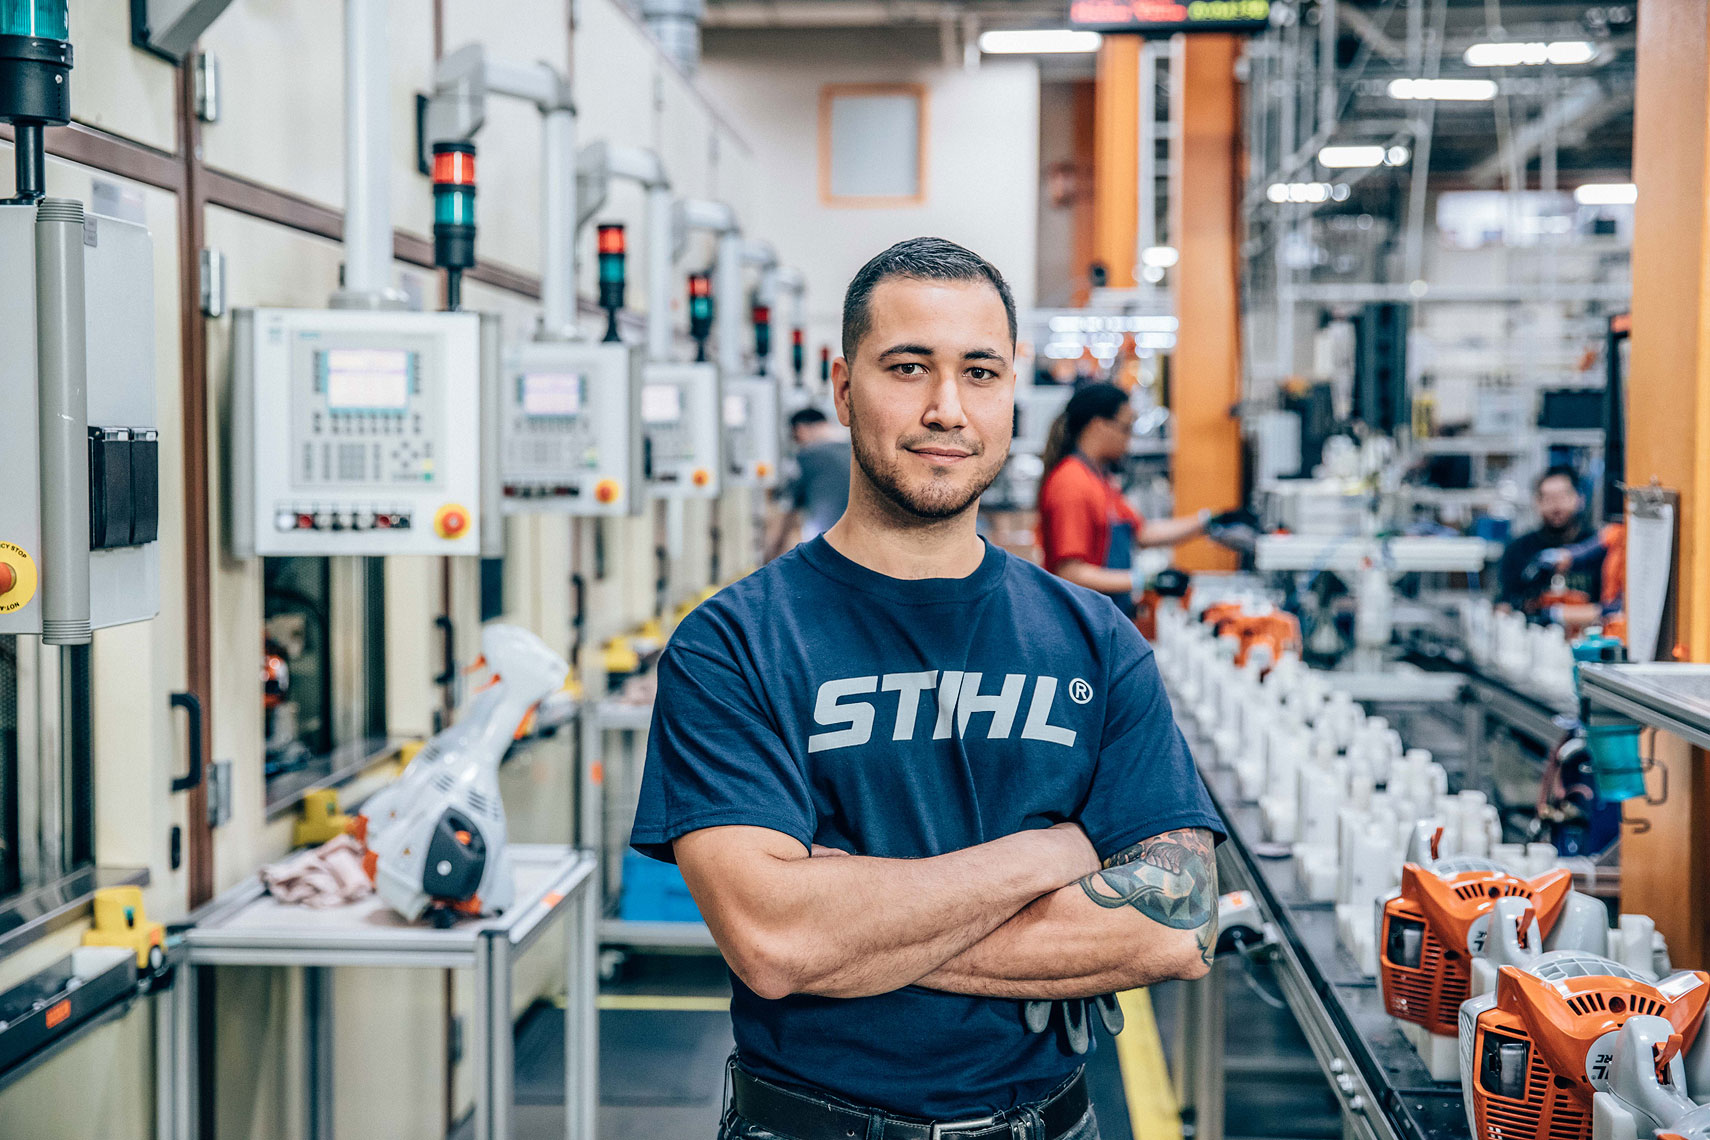 STIHL Production  | John Fedele Product Photography